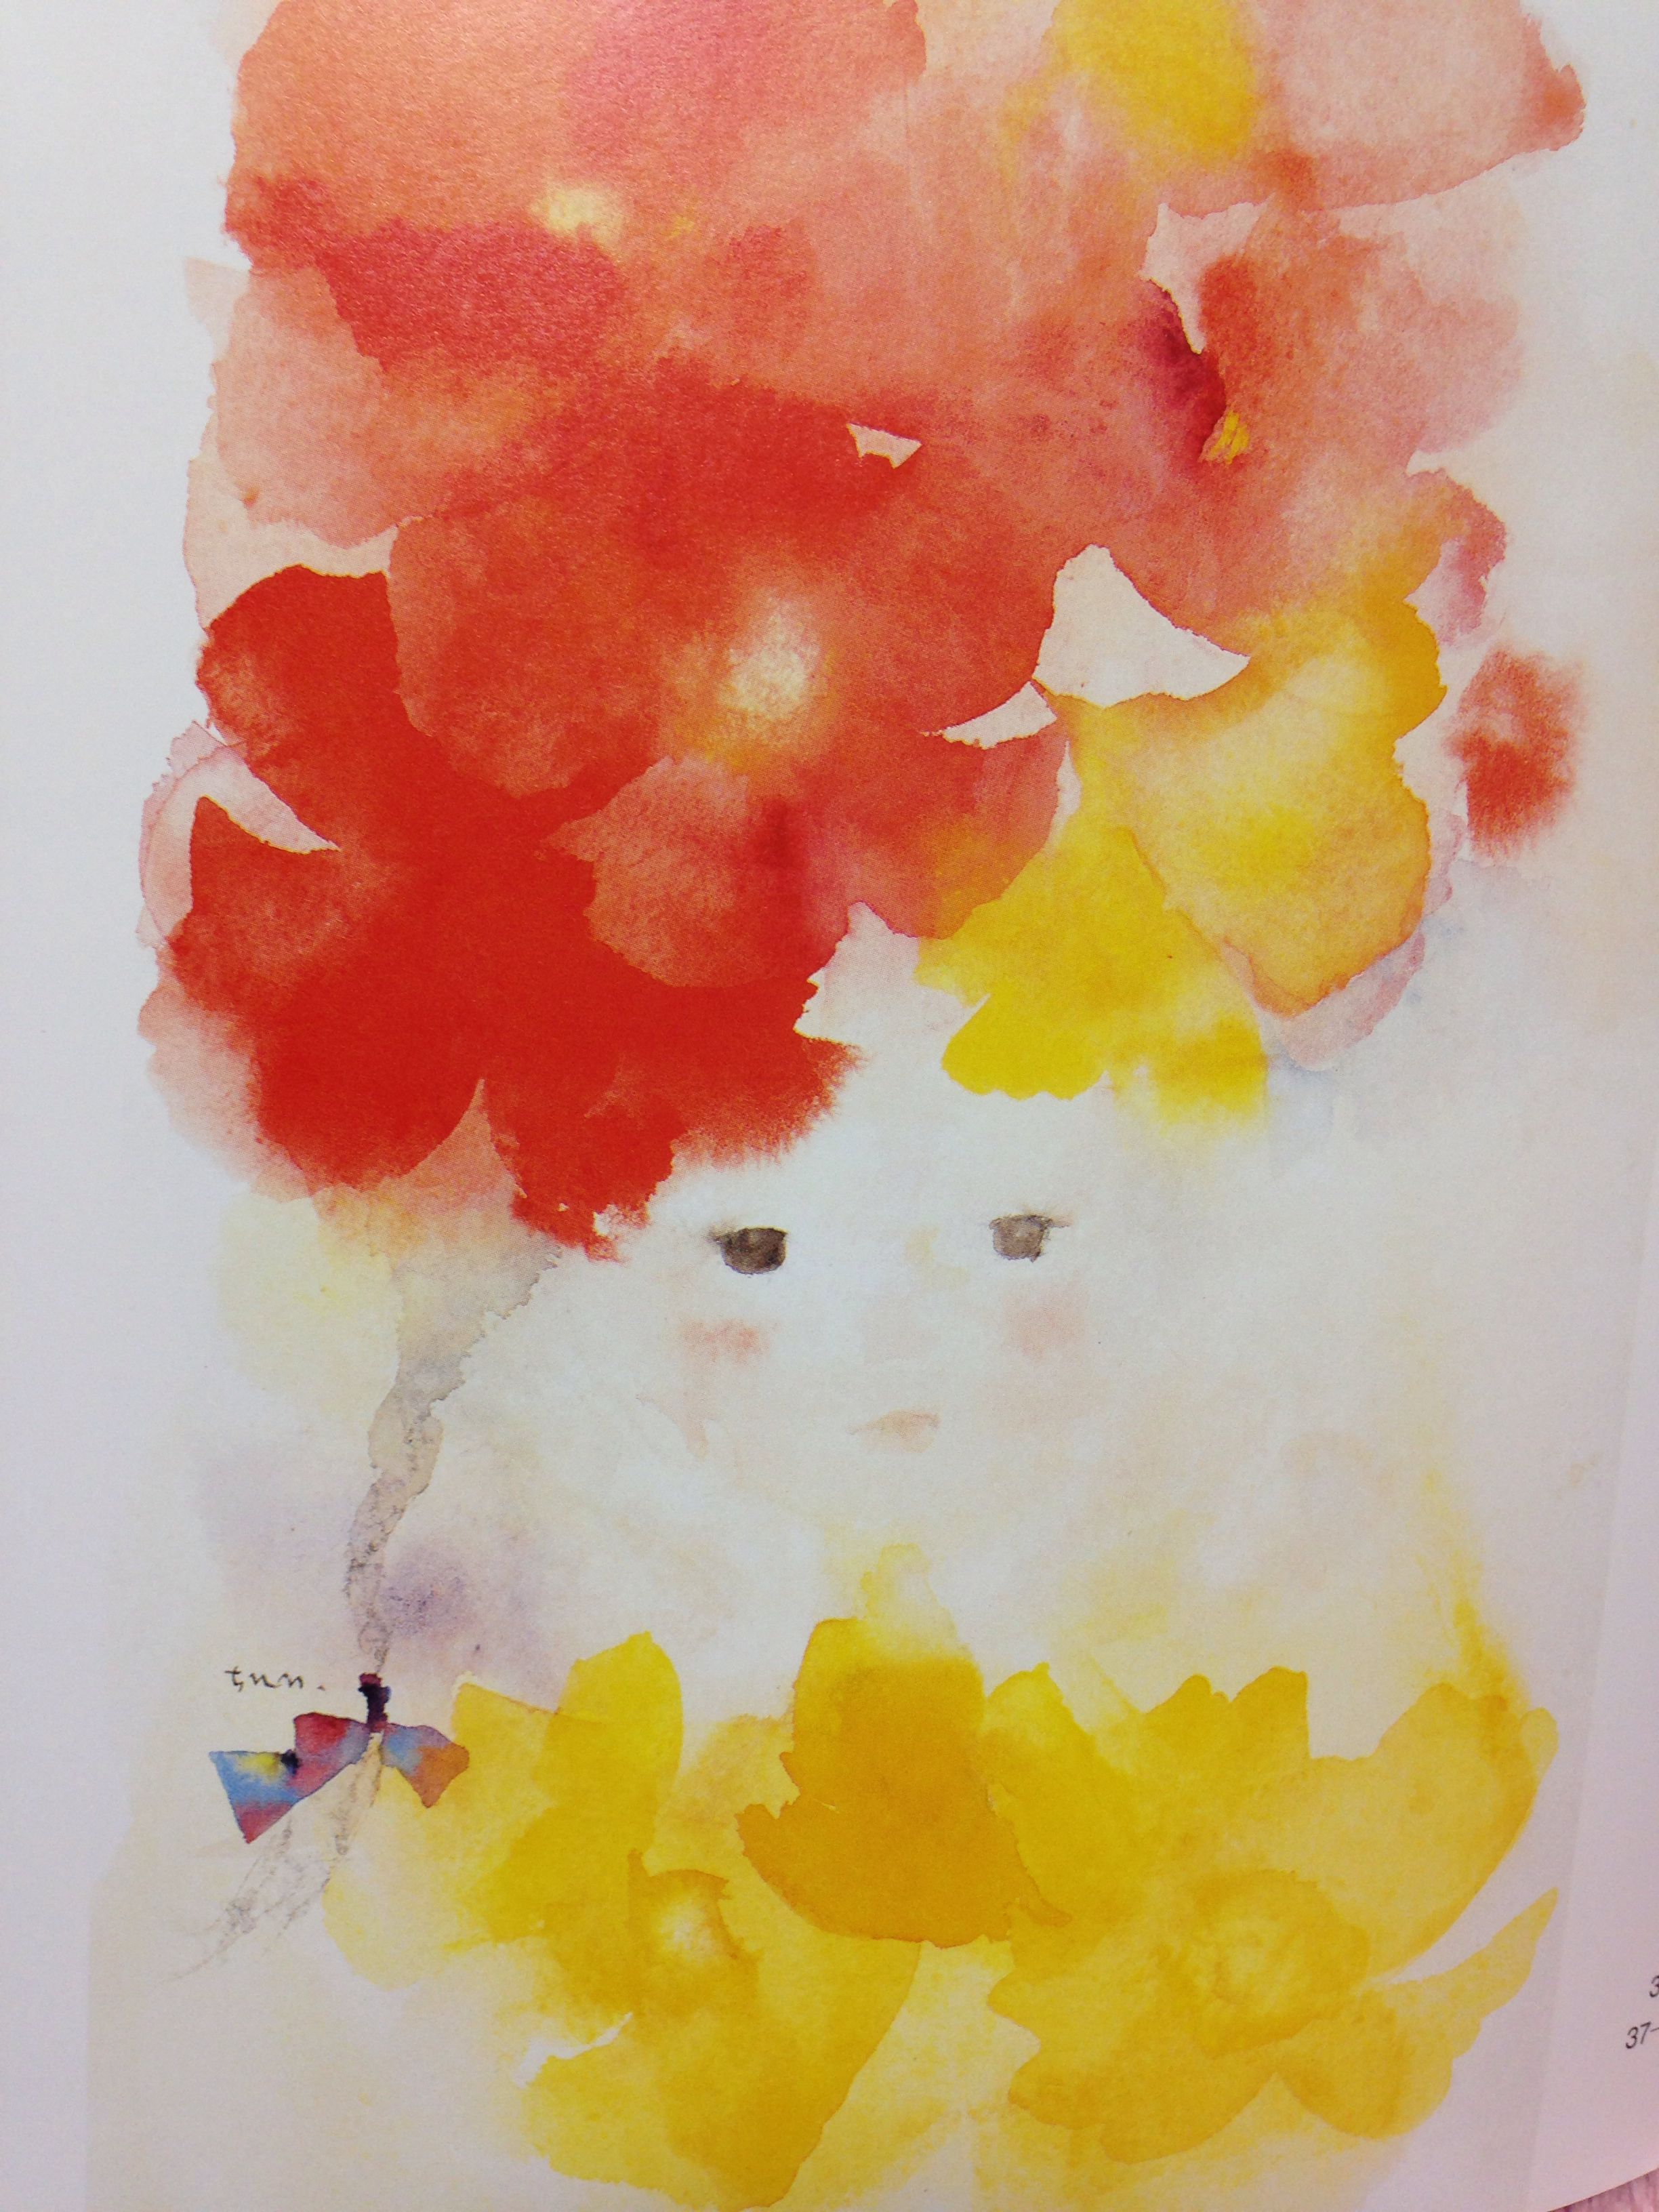 Another Beautiful Chihiro Iwasaki Painting 画像あり 水彩画